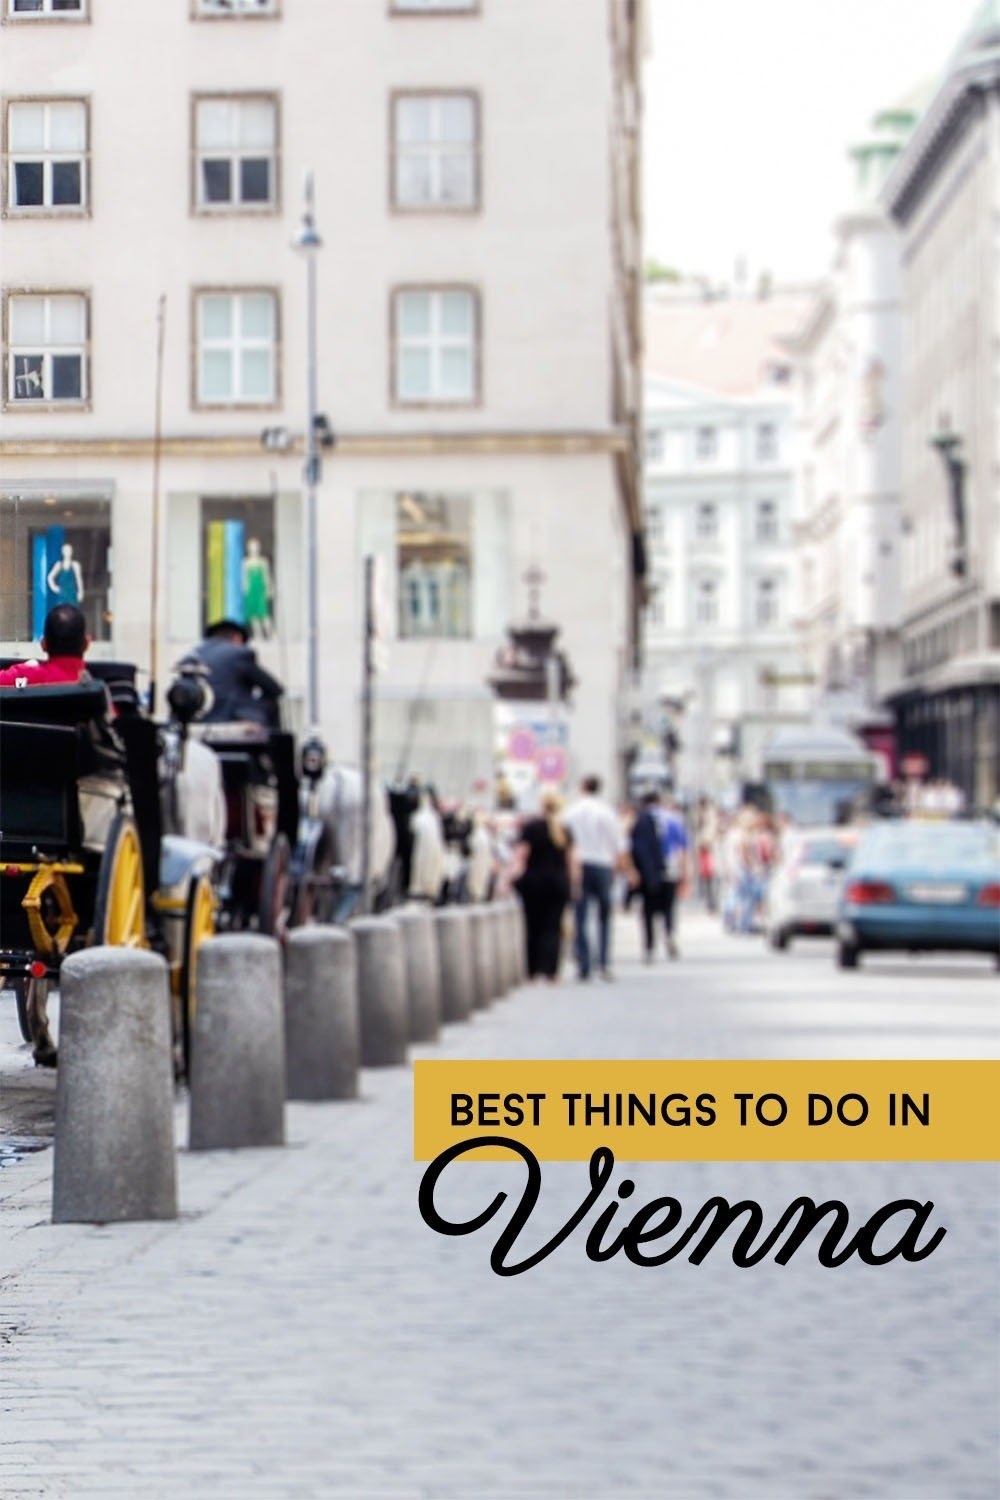 Here's your essential travel guide to spending 3 days in Vienna, Austria's majestic capital. Get ready to enjoy the ultimate little holiday in this city that has mastered the art of work-life balance. Live the city's mantra – productive idleness – with mornings lingering in coffee houses, afternoons filled with classic and trailblazing art and culture, and evenings at the park. This city break guide covers all the best things to do in Vienna.